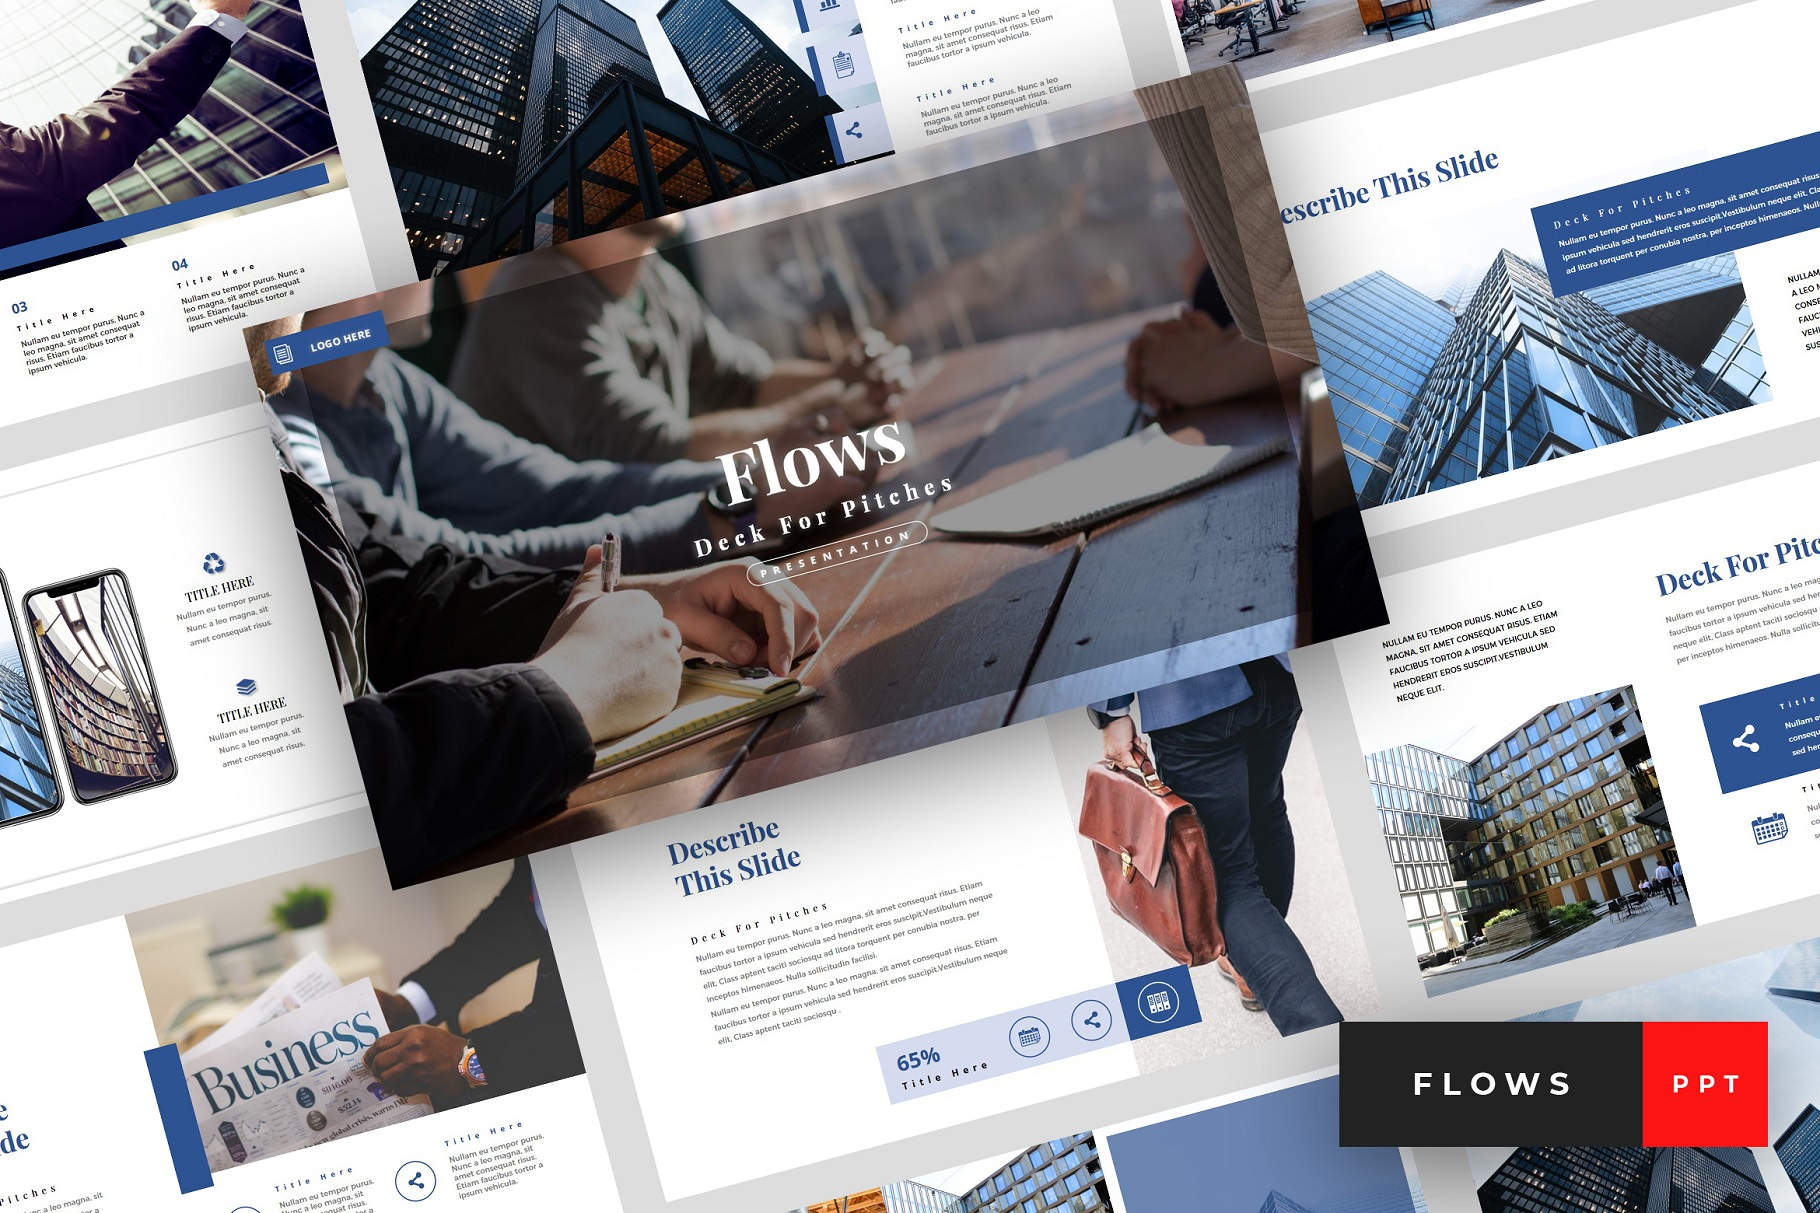 Flows - Pitch Deck PowerPoint Template example image 1